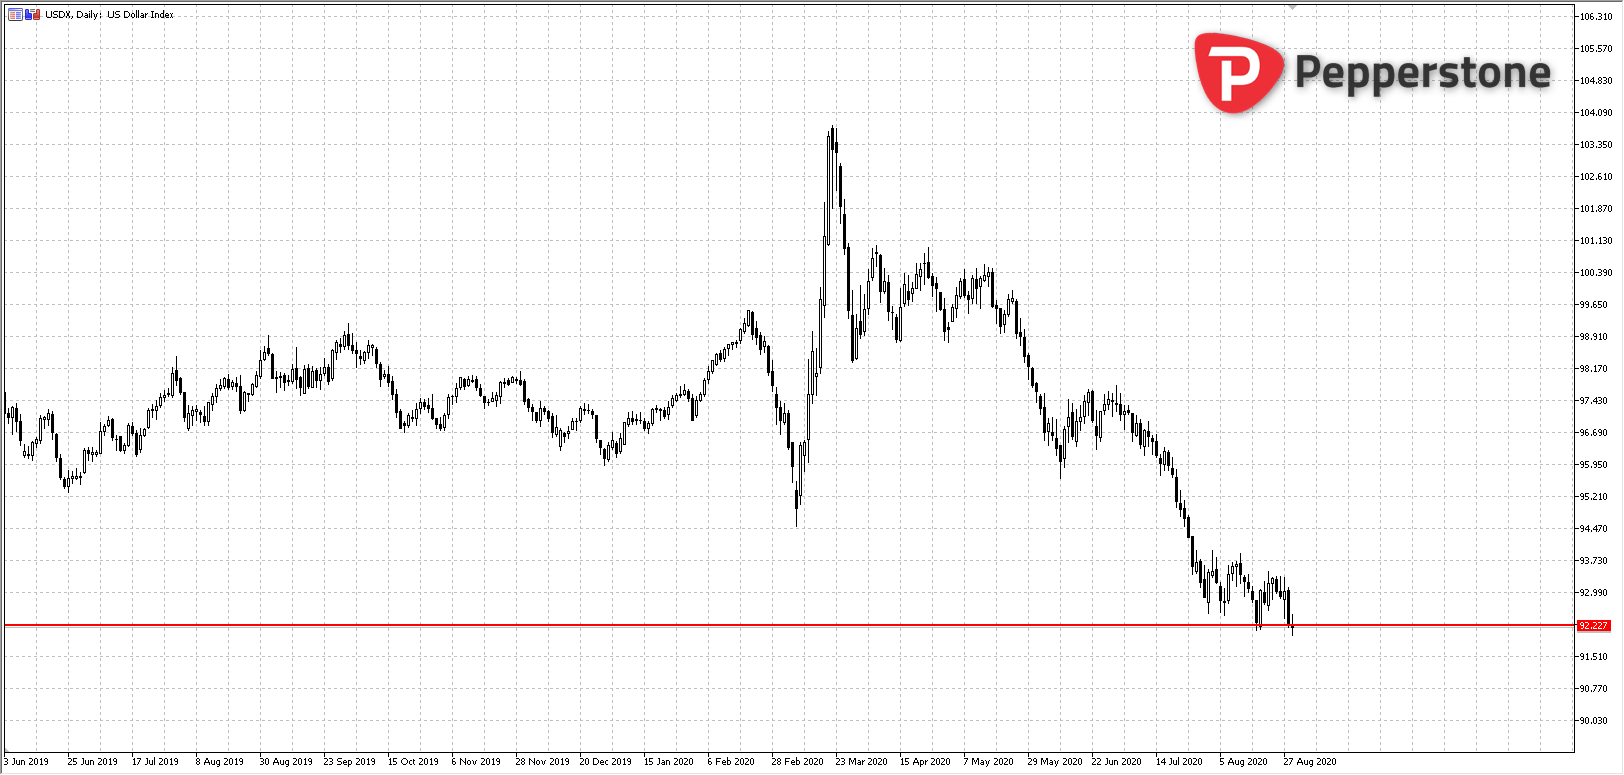 DXY_diario_08312020.png